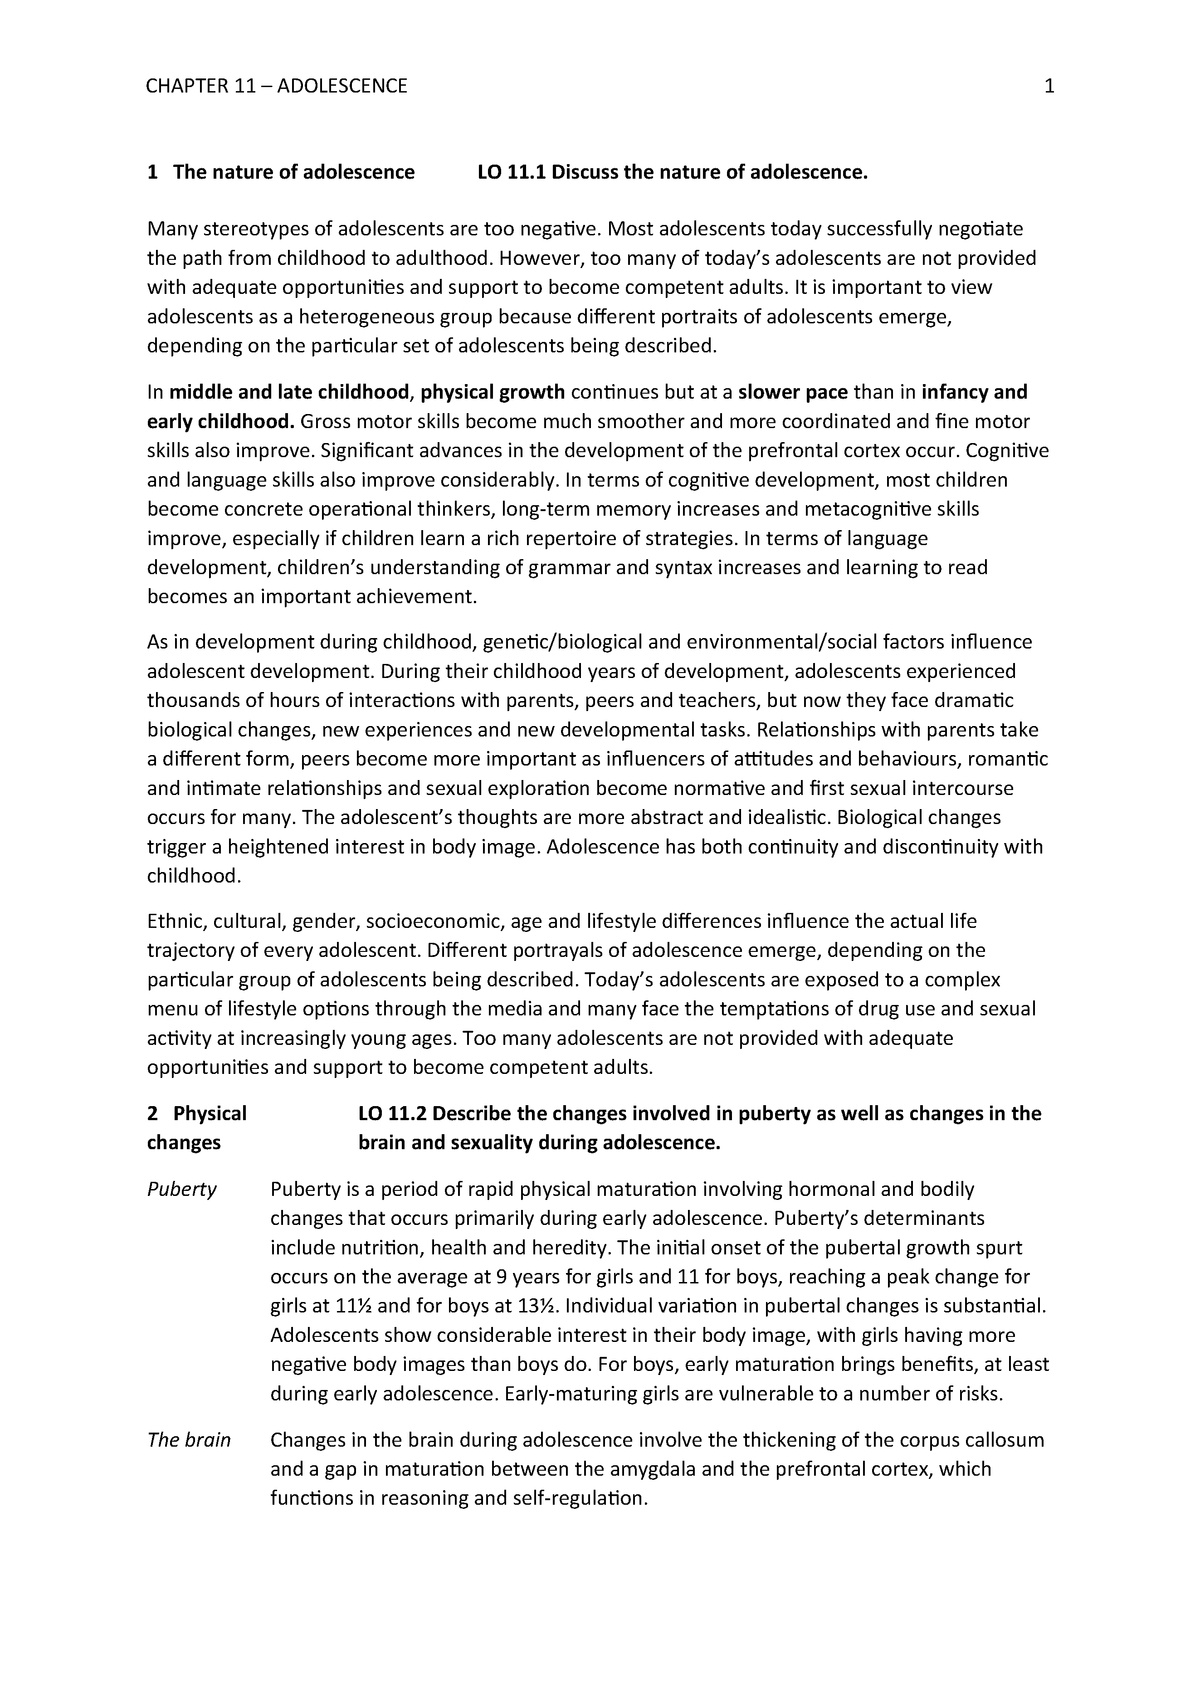 Chapter 11 - Summary A Topical Approach to Life-Span - StuDocu